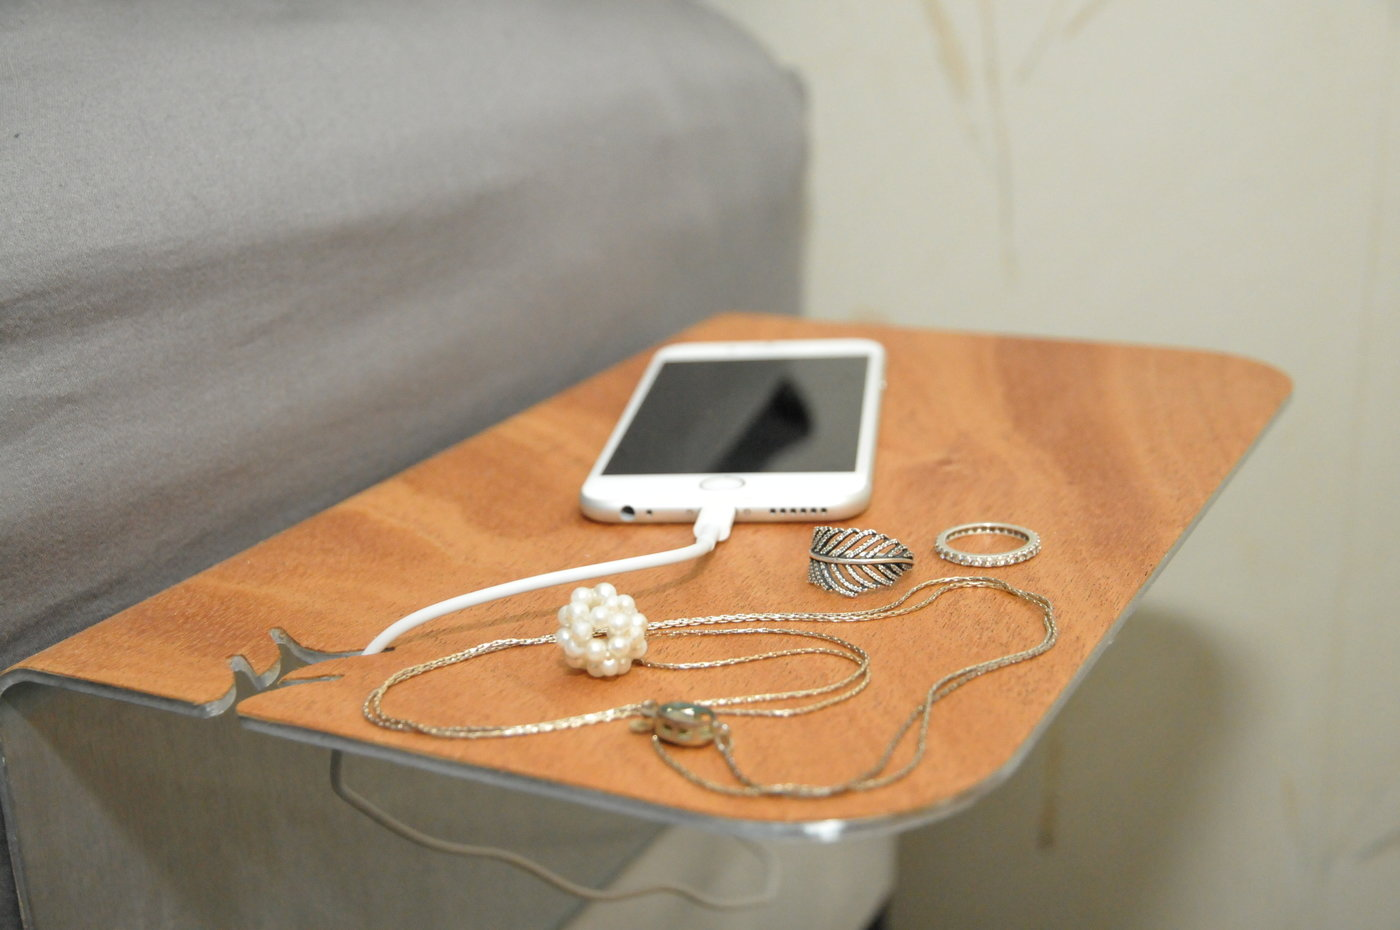 A Kickstarter Project Mobi Modern Compact Bedside Or Couch Table By Steve Reiser At Coroflot